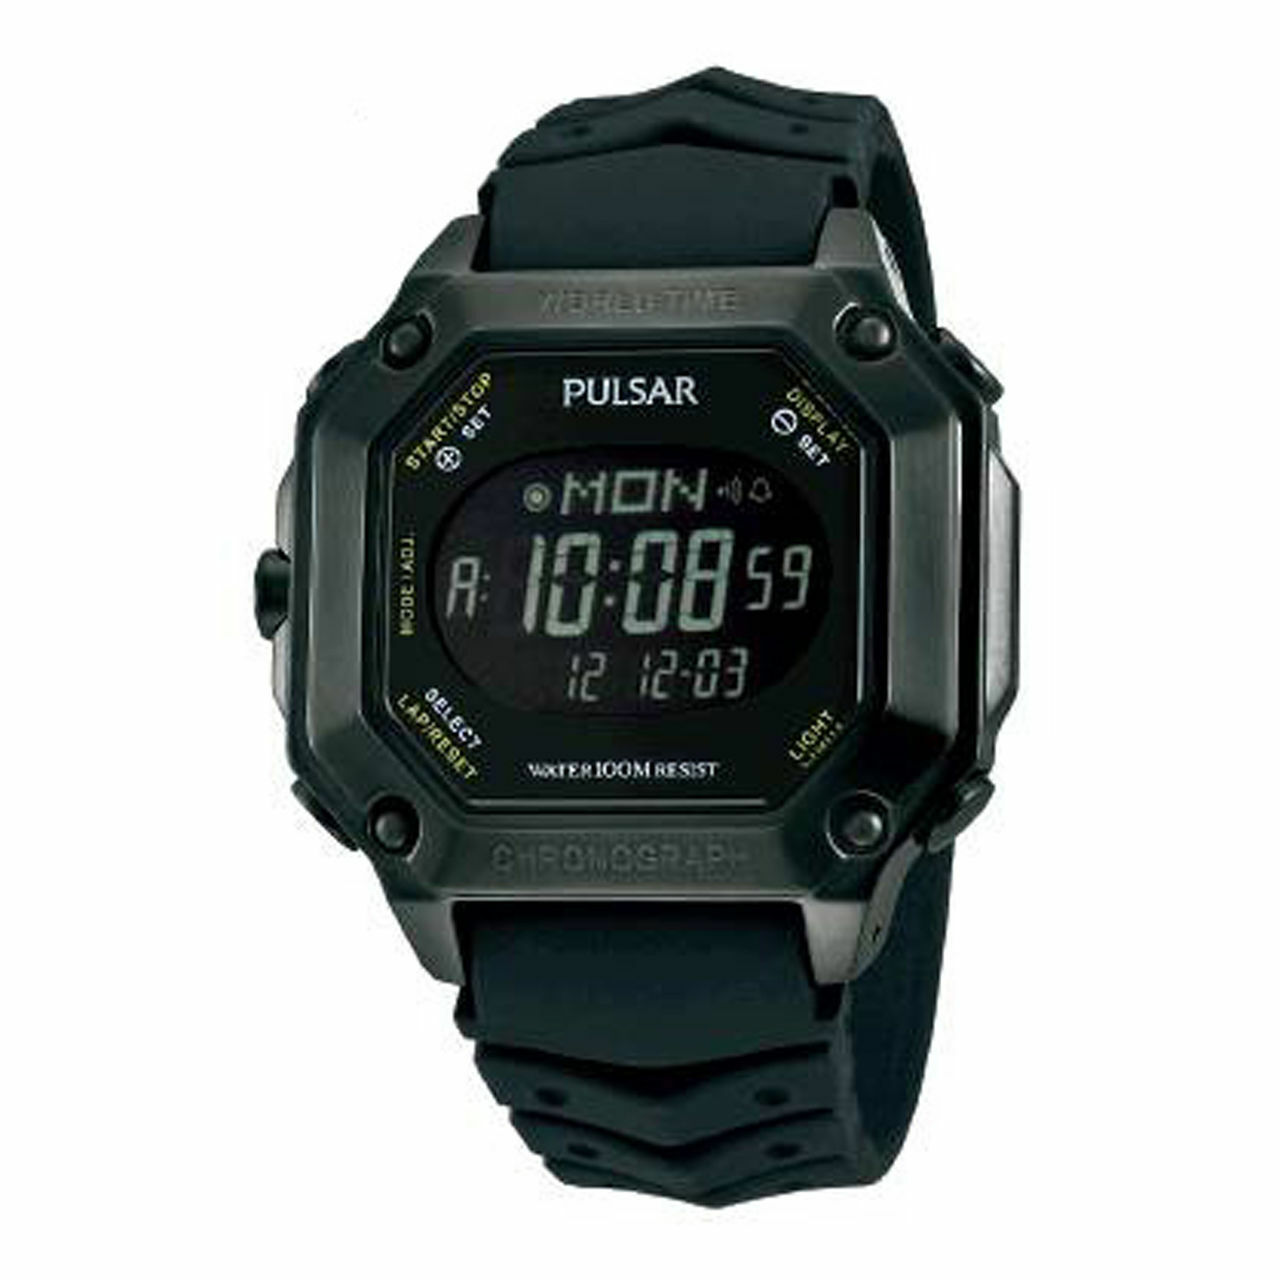 Pulsar World Time Digital Chronograph Daily Alarms Date Mens Watch